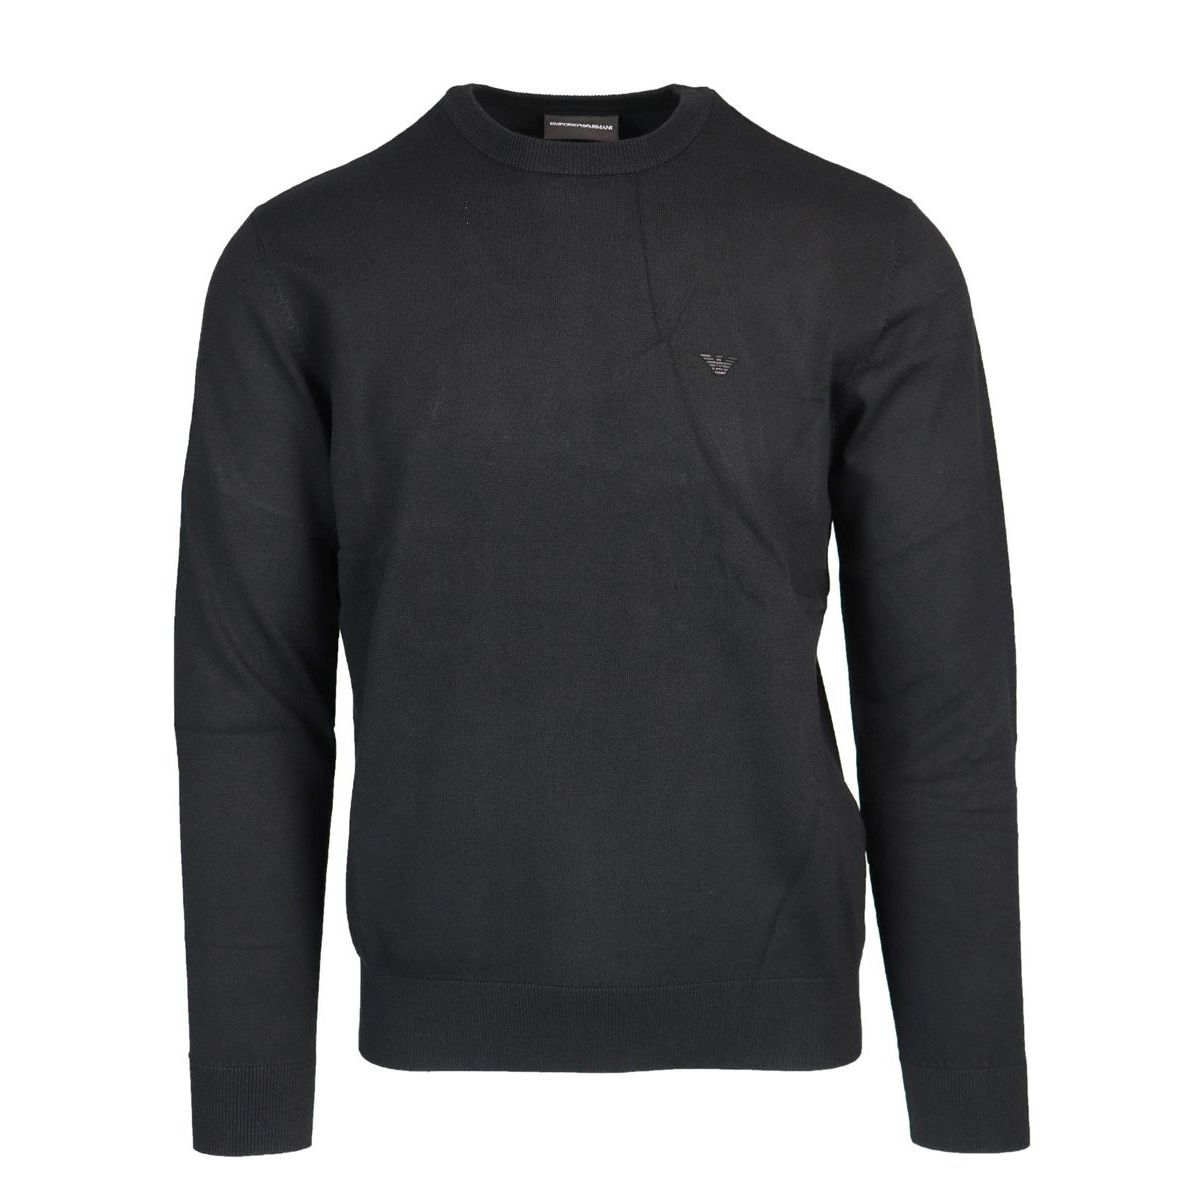 Viscose blend crew neck sweater Black Emporio Armani